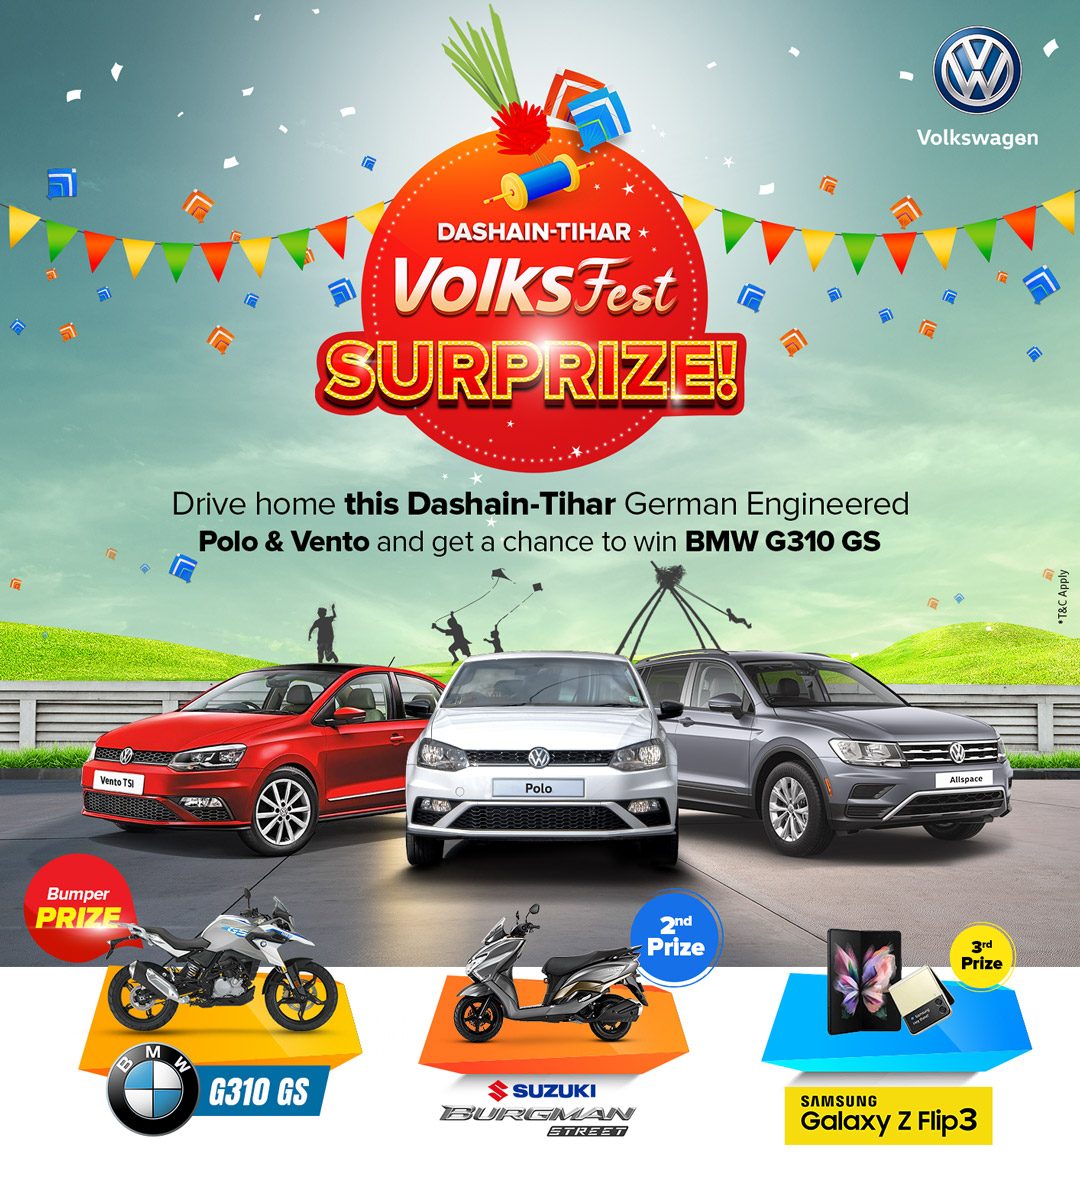 VW double offers